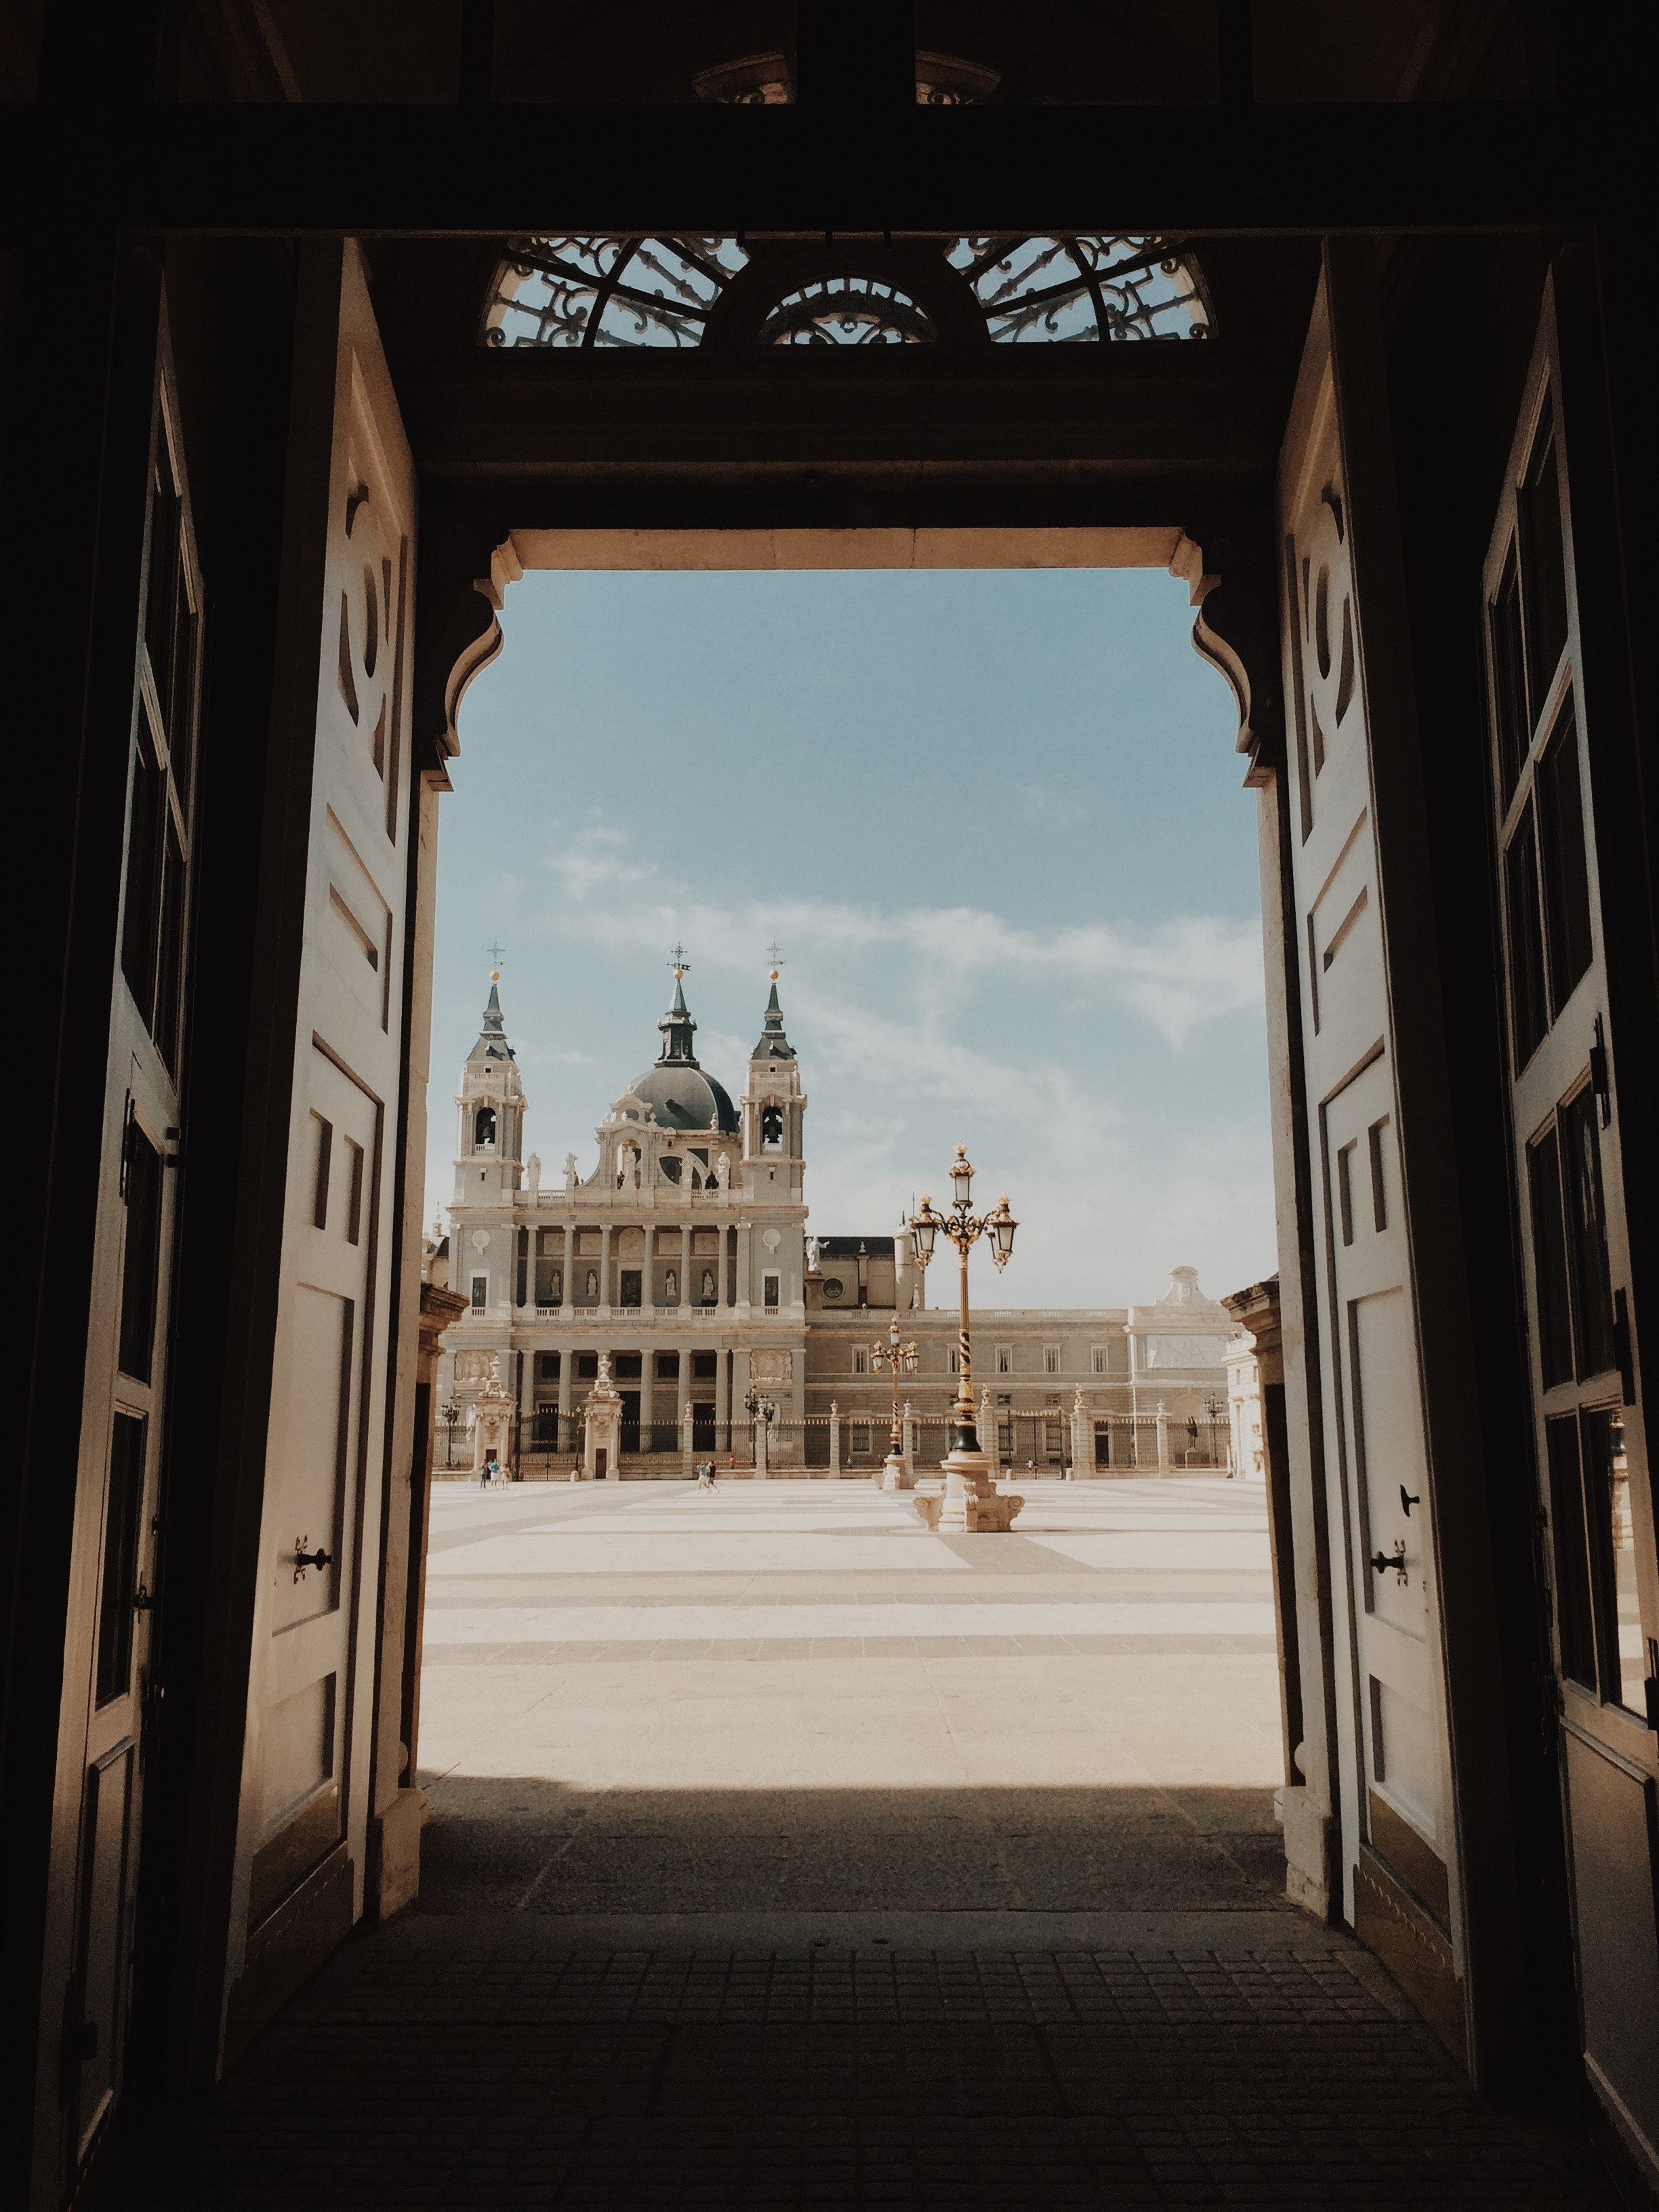 opened-door-with-view-of-cathedral-2406875